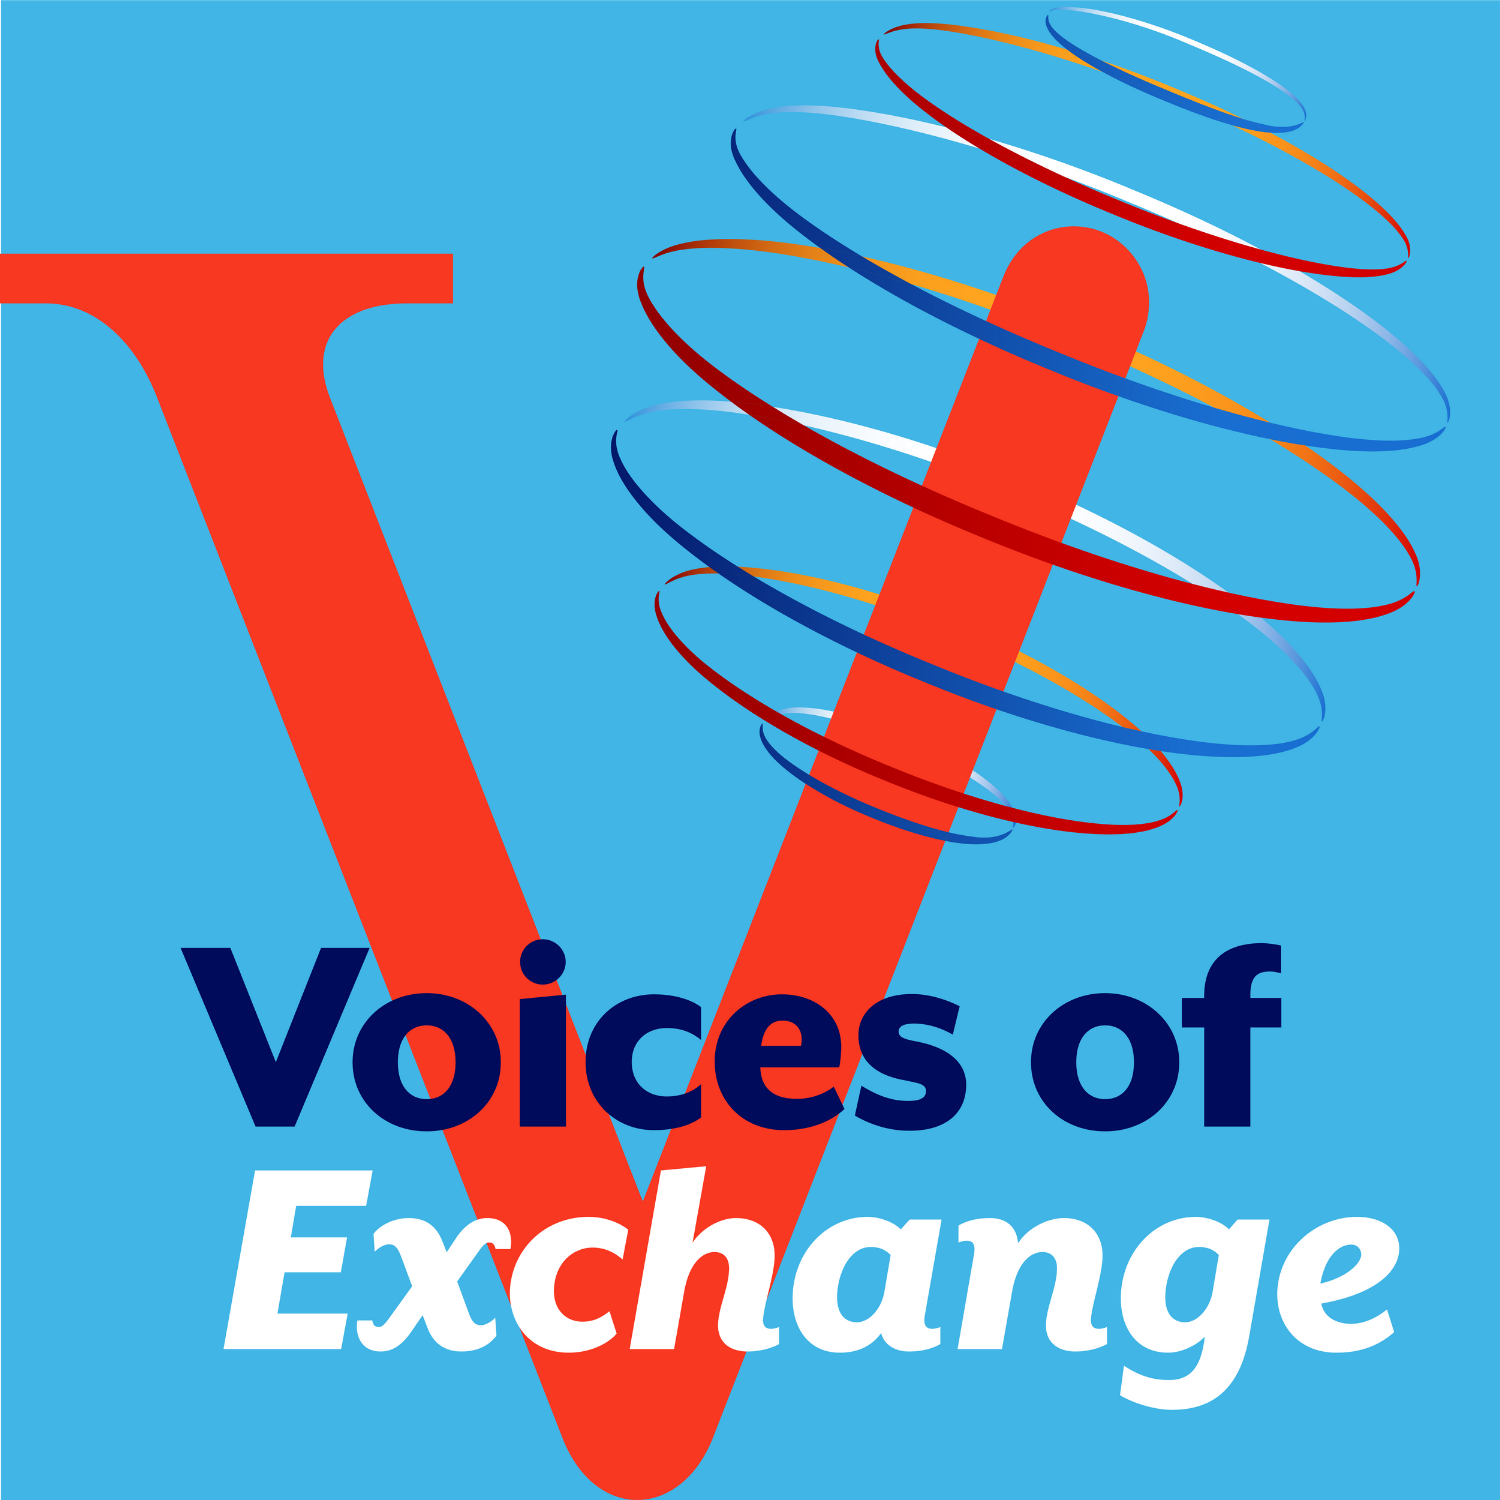 Voices of Exchange-Episode 1: More Alike Than Different